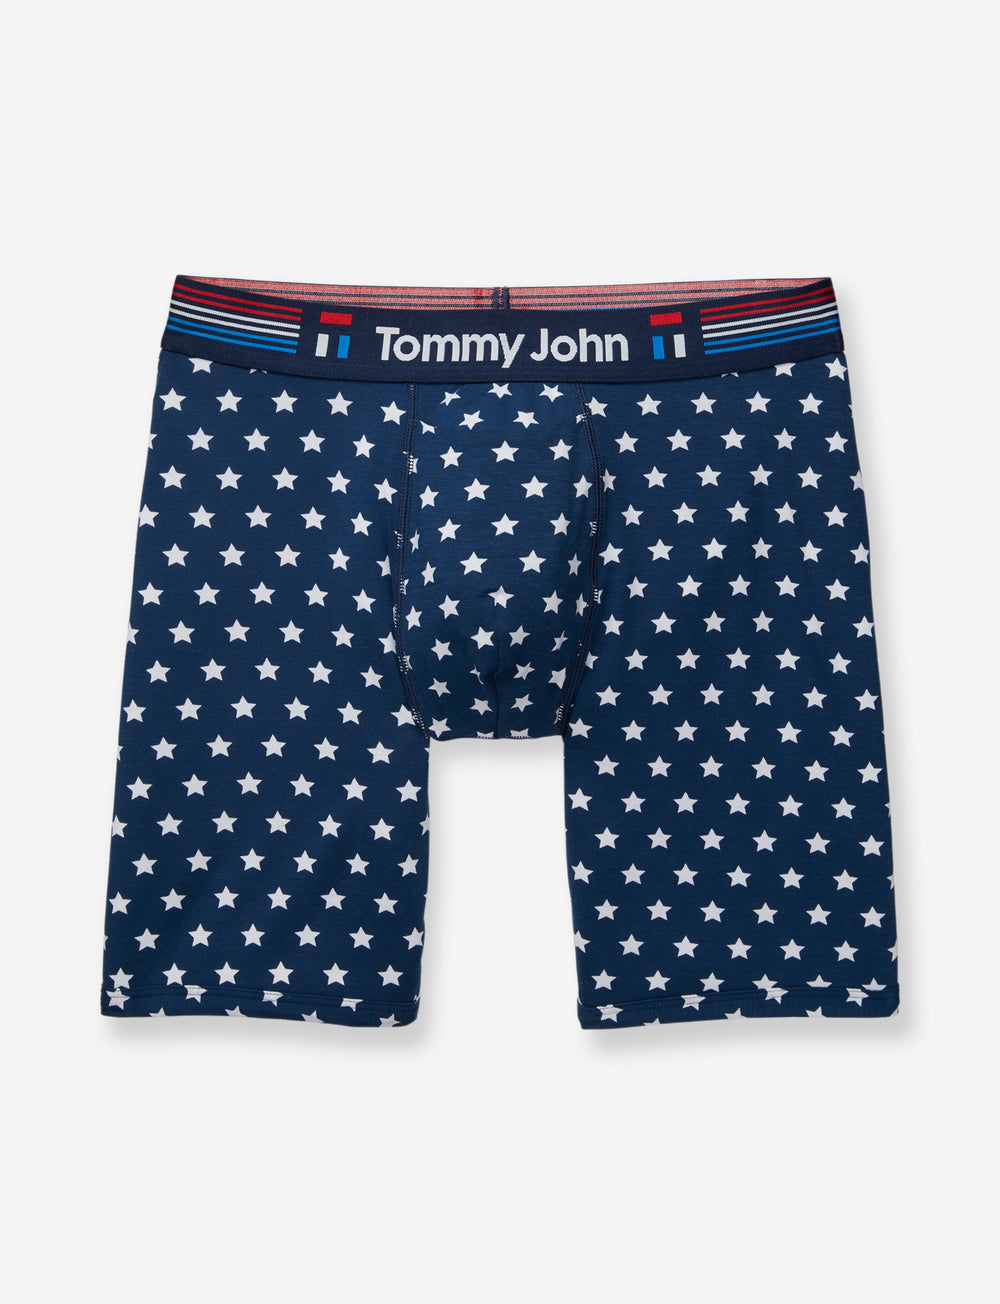 Cool Cotton Star Print Boxer Brief Details Image